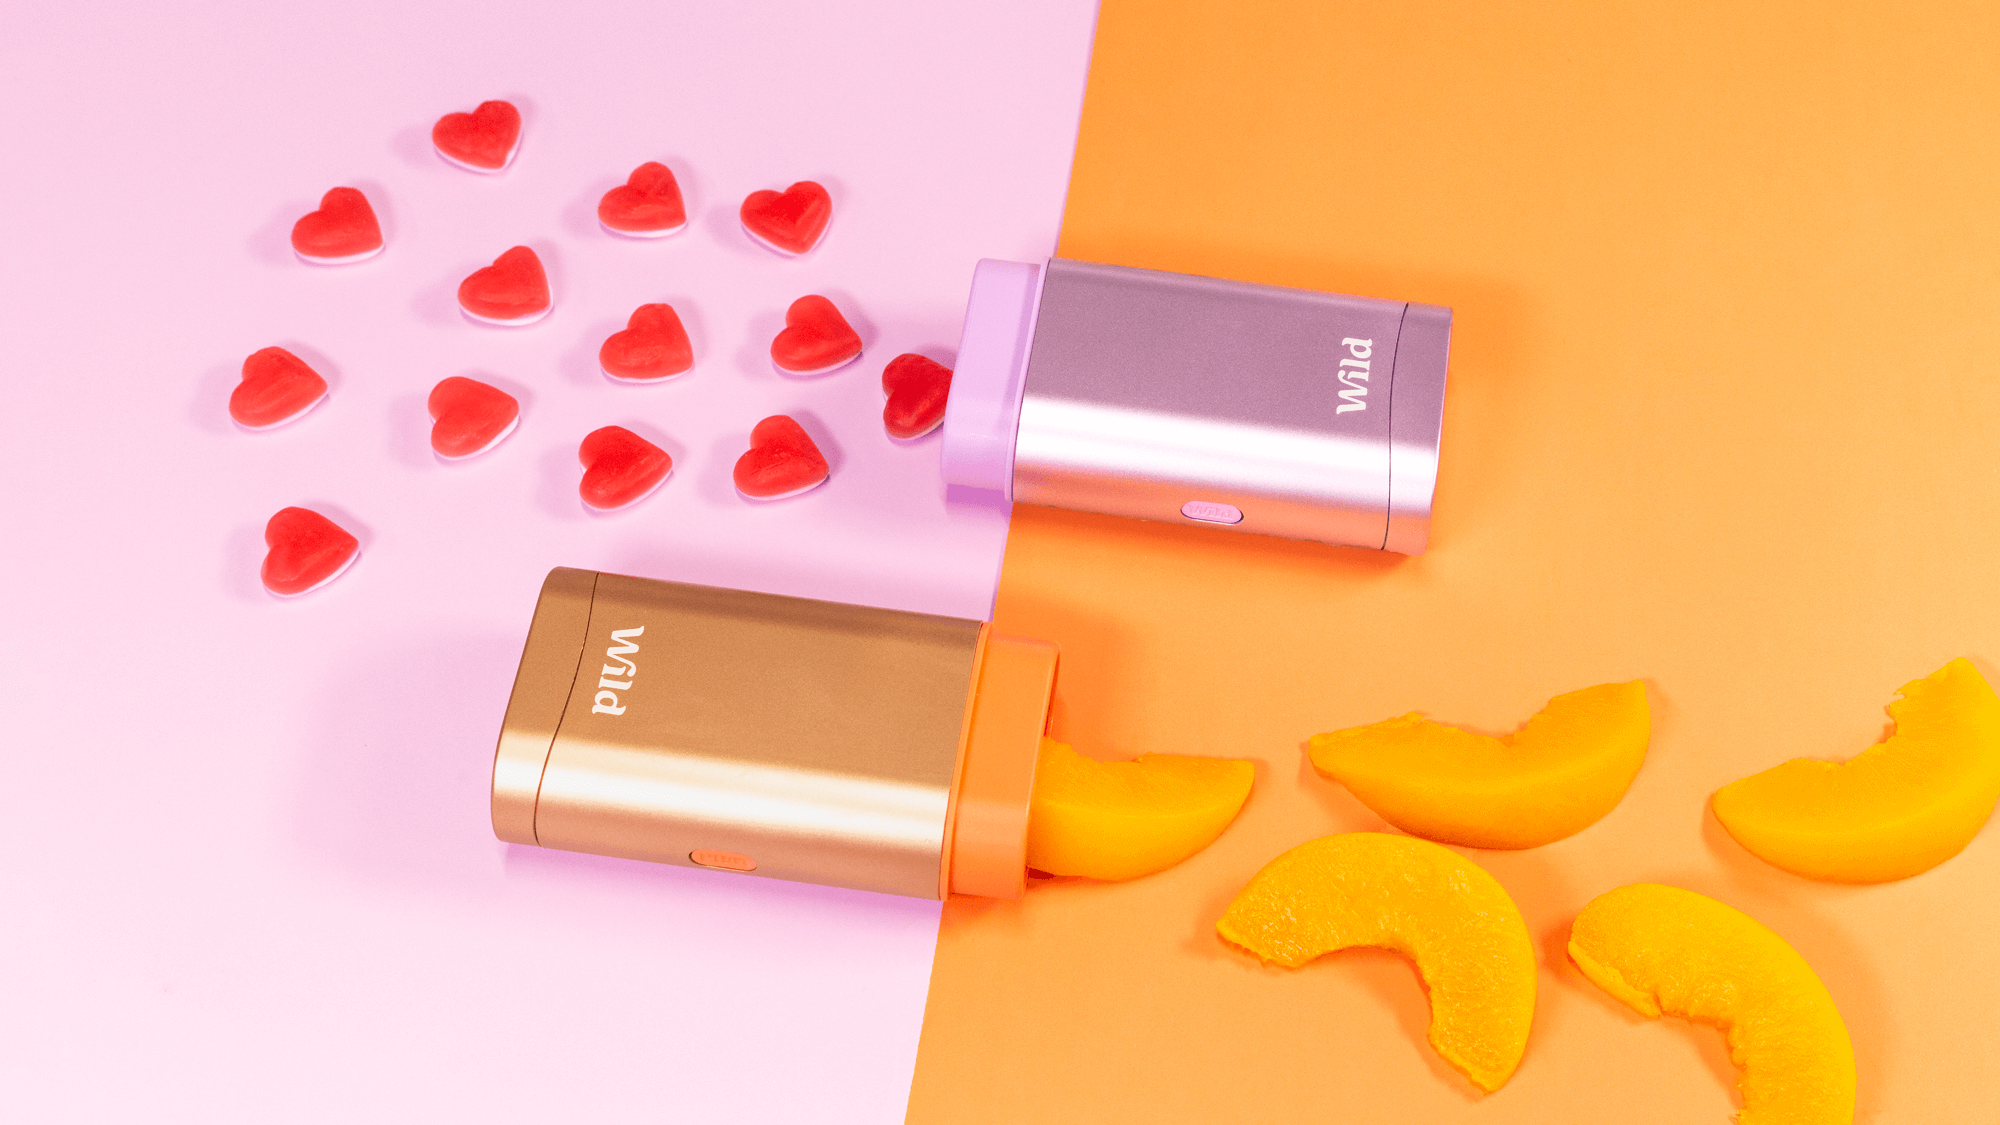 WeAreWild deodorants in peach and pink pictured agains contrasting backdrops.